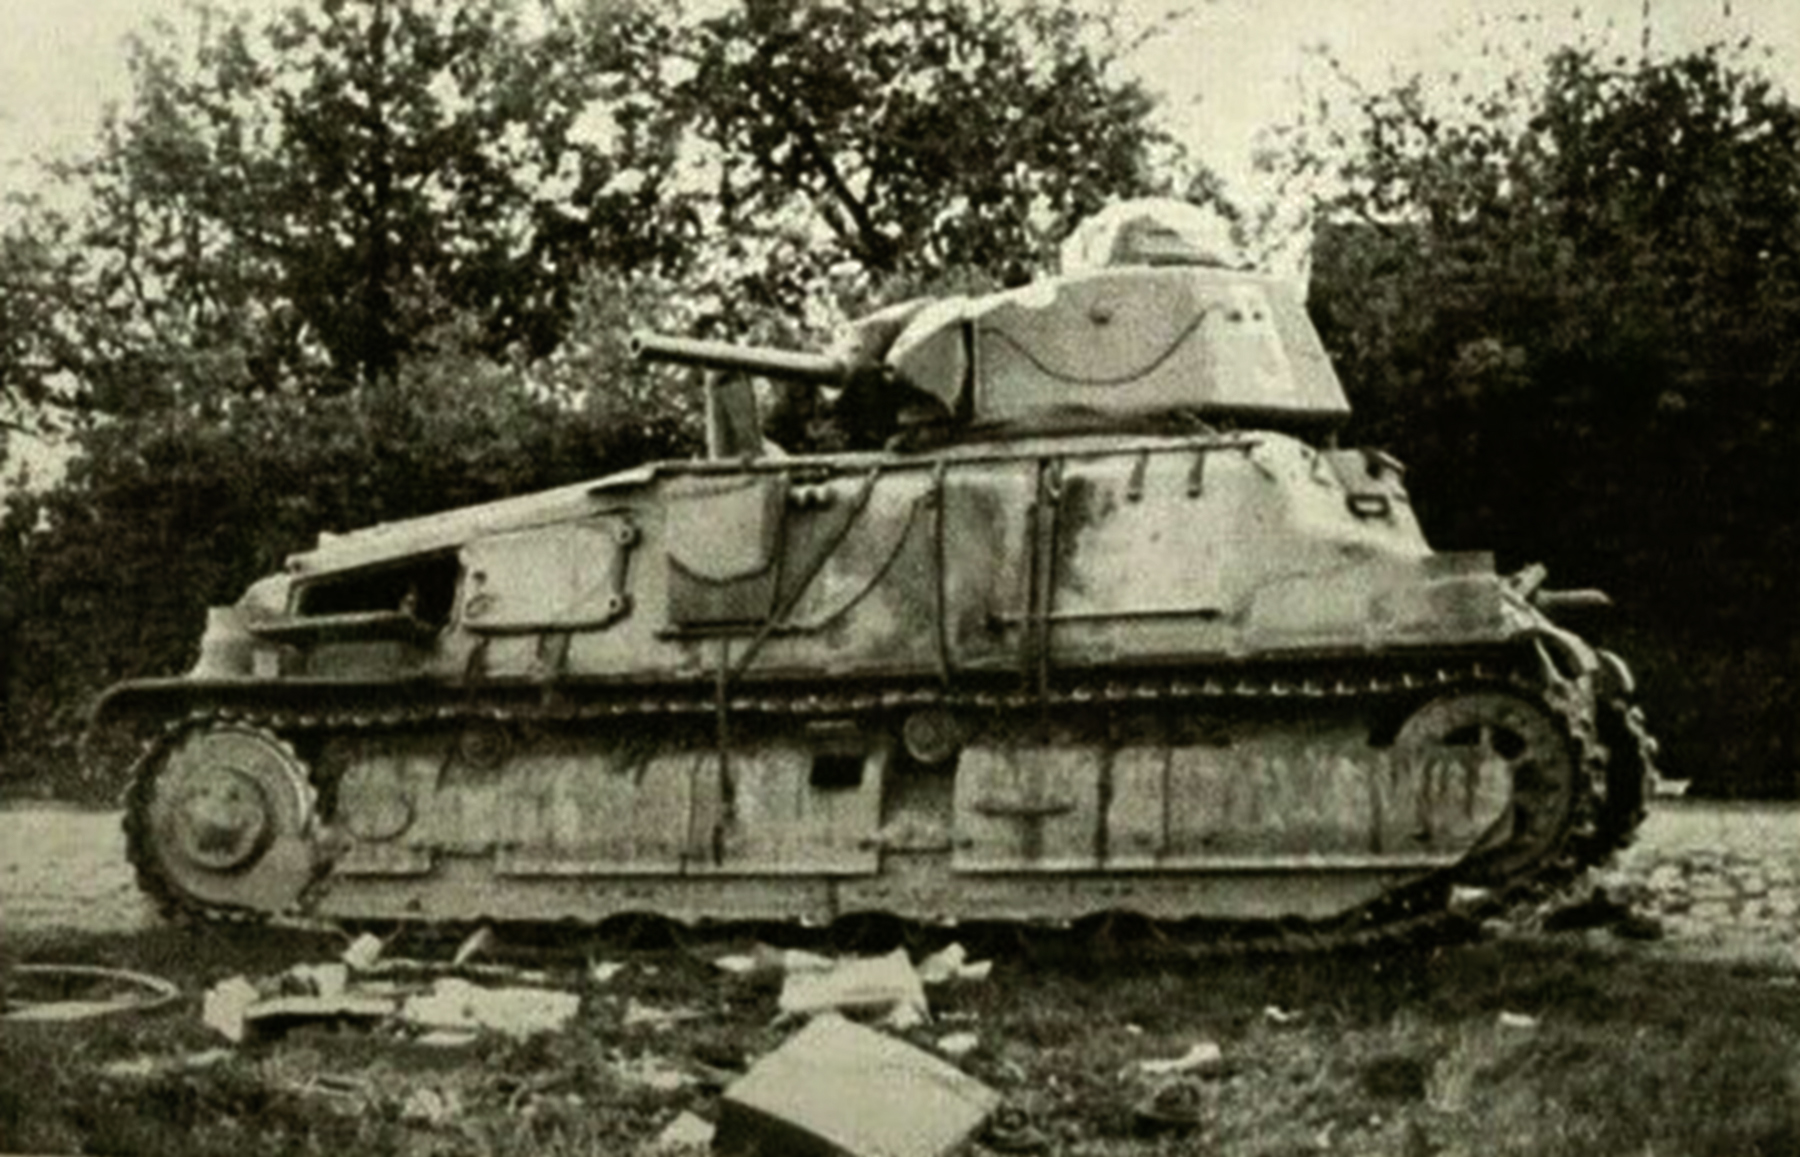 French Army Somua S35 White 9 abandoned along a roadside France June 1940 ebay 01